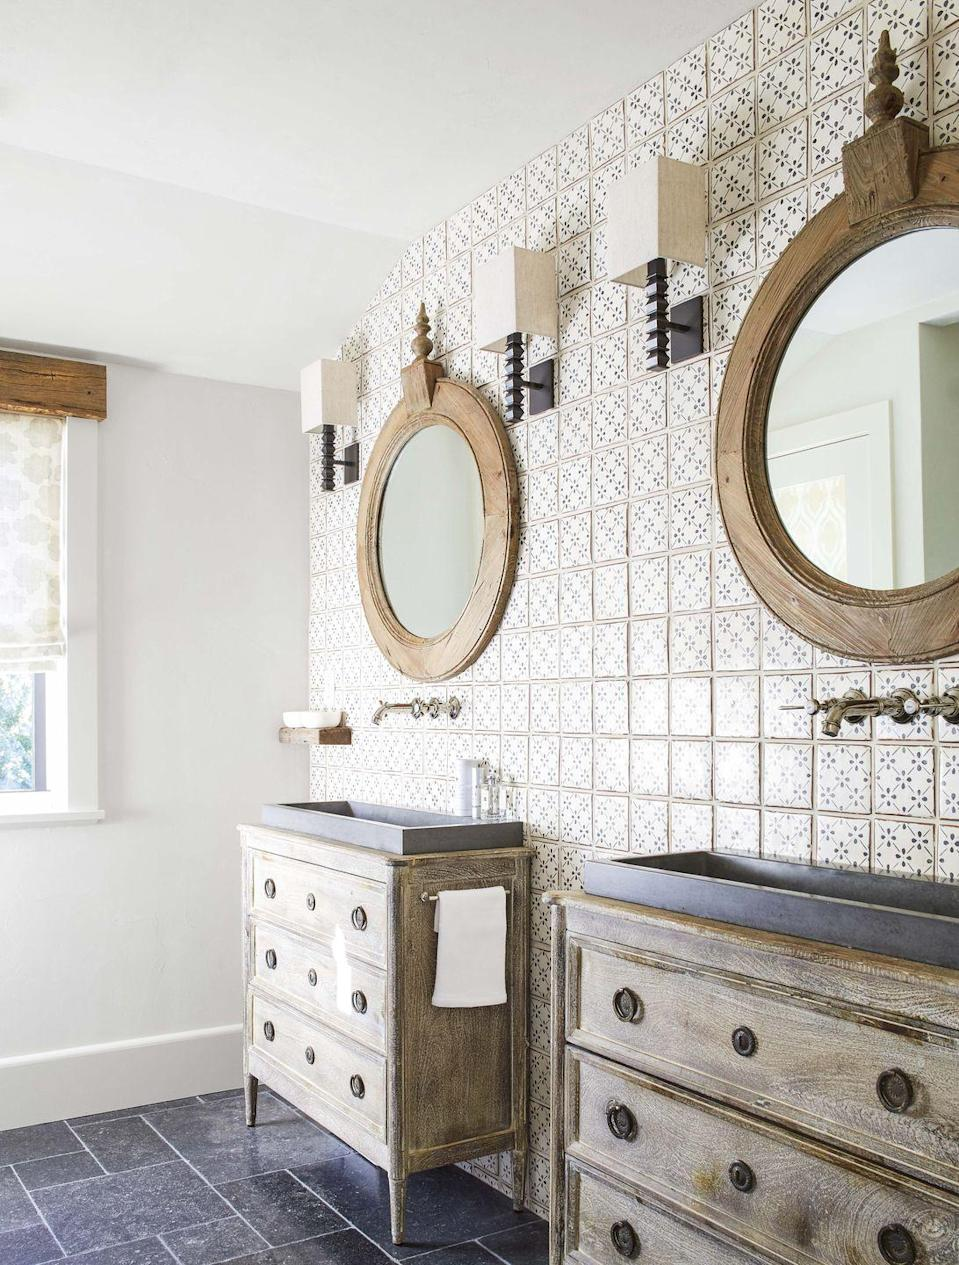 """<p>In this <a href=""""https://www.housebeautiful.com/design-inspiration/house-tours/a30696947/lisa-tharp-new-england-home/"""" rel=""""nofollow noopener"""" target=""""_blank"""" data-ylk=""""slk:castle-inspired home by Lisa Tharp,"""" class=""""link rapid-noclick-resp"""">castle-inspired home by Lisa Tharp,</a> the designer continued the rustic French country theme into the bathroom with two wooden chests in lieu of traditional sink vanities and a painted tile wall for added texture. </p>"""